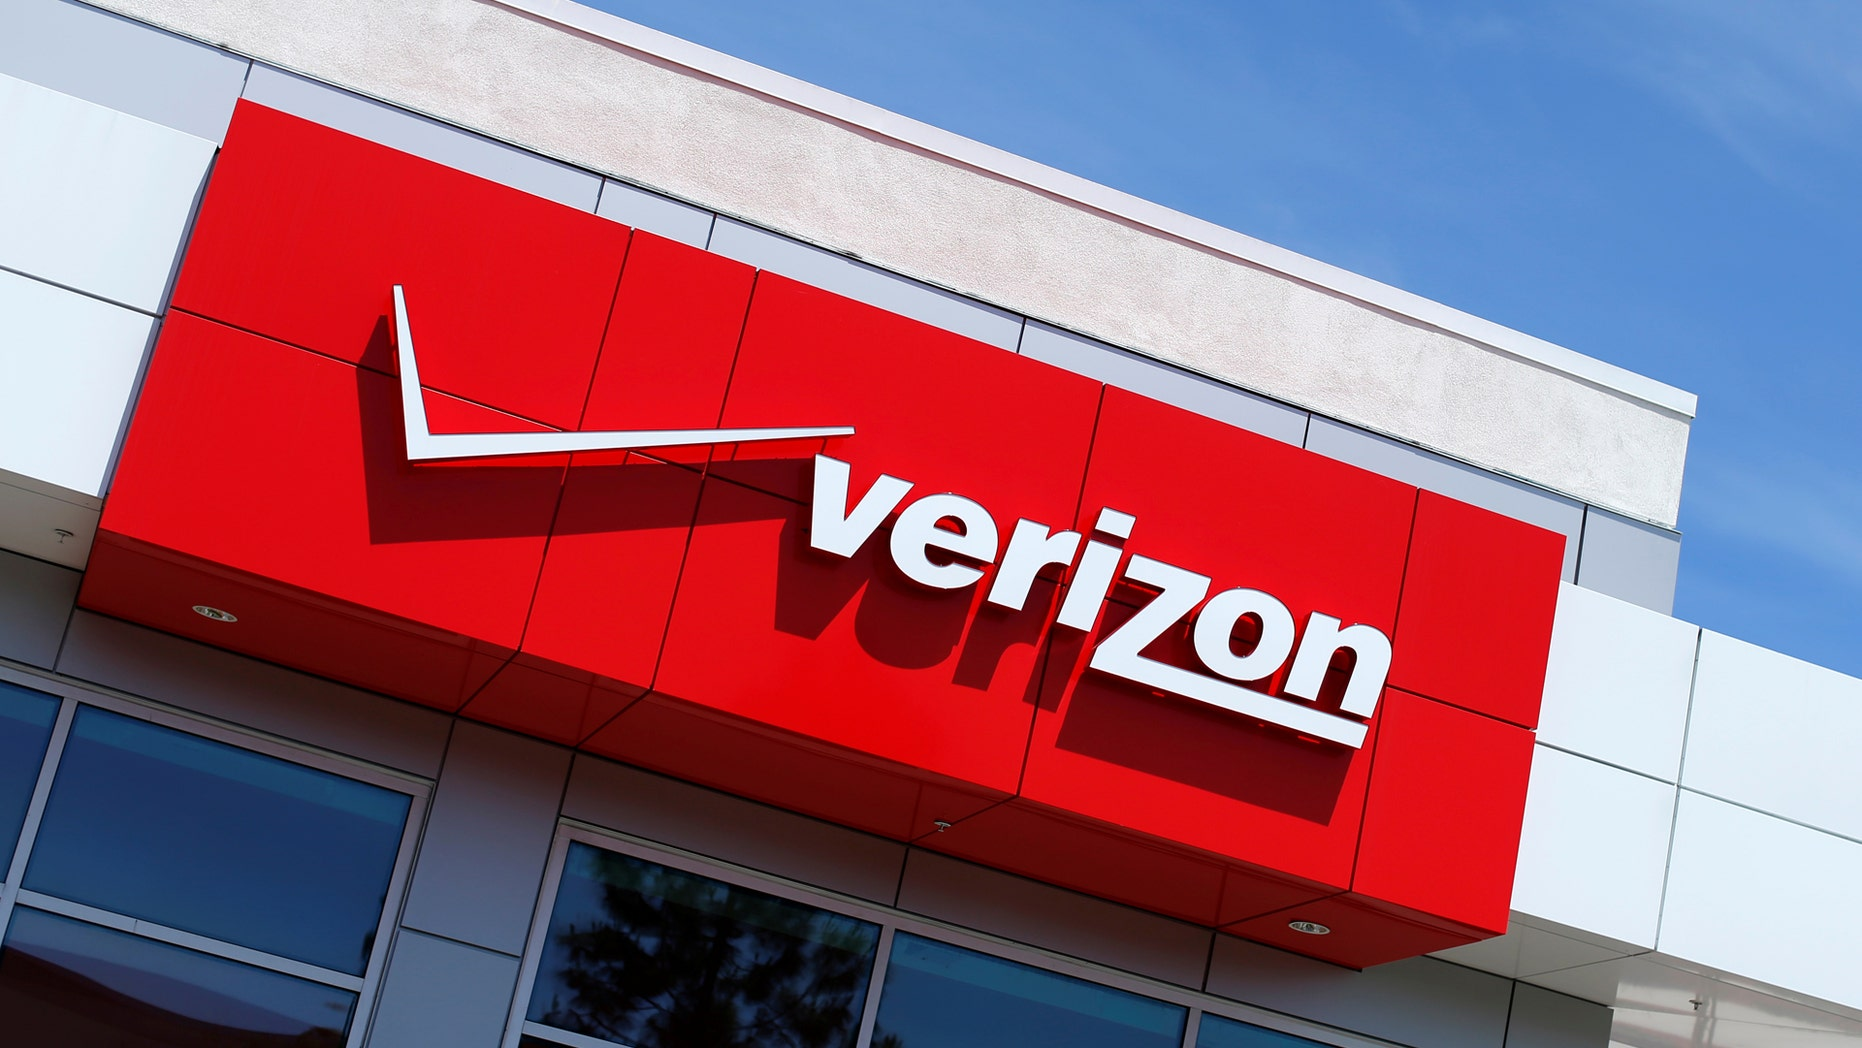 File photo: The logo of Verizon is seen at a retail store in San Diego, California April 21, 2016. (REUTERS/Mike Blake)